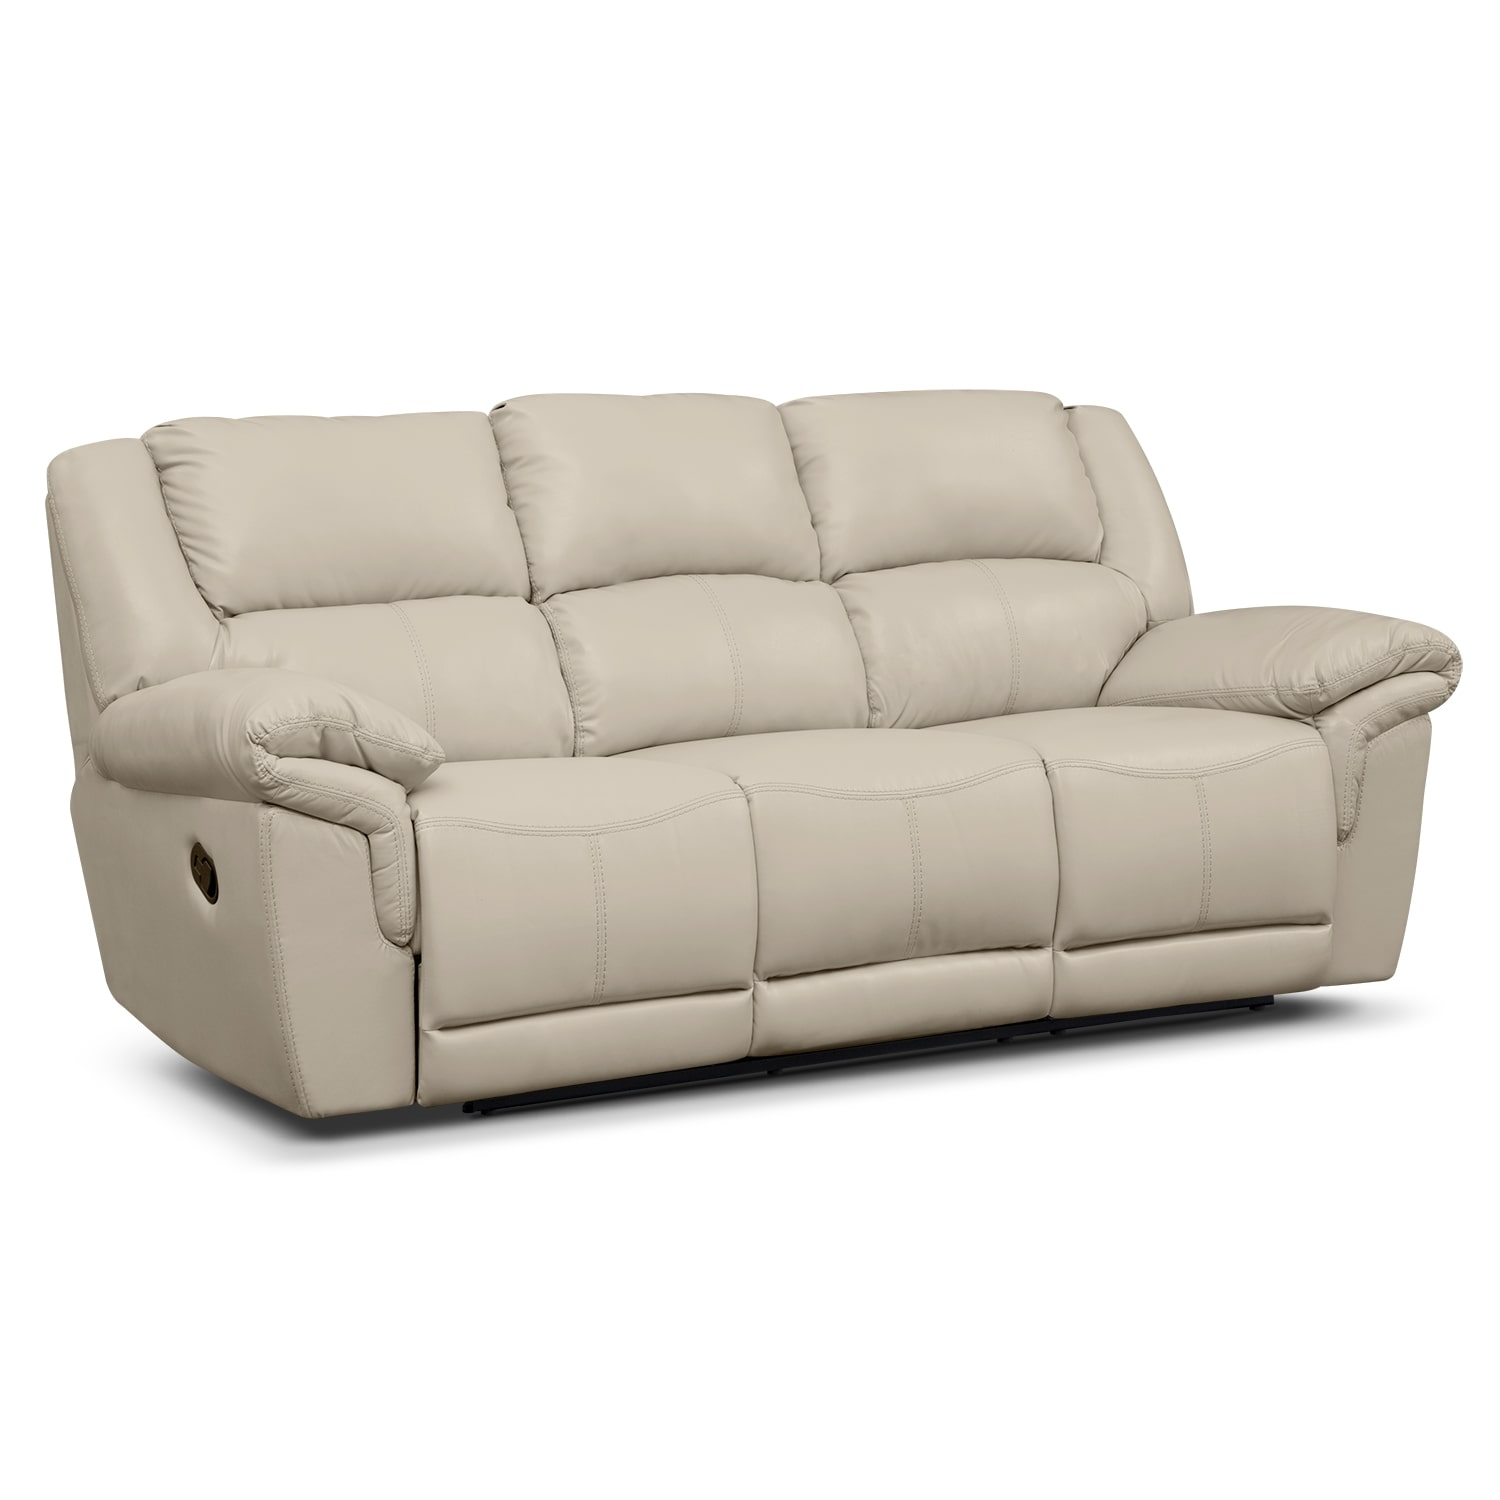 Dual Recliner Sofa Dual Reclining Sofas S Furniture Sofas And Couches